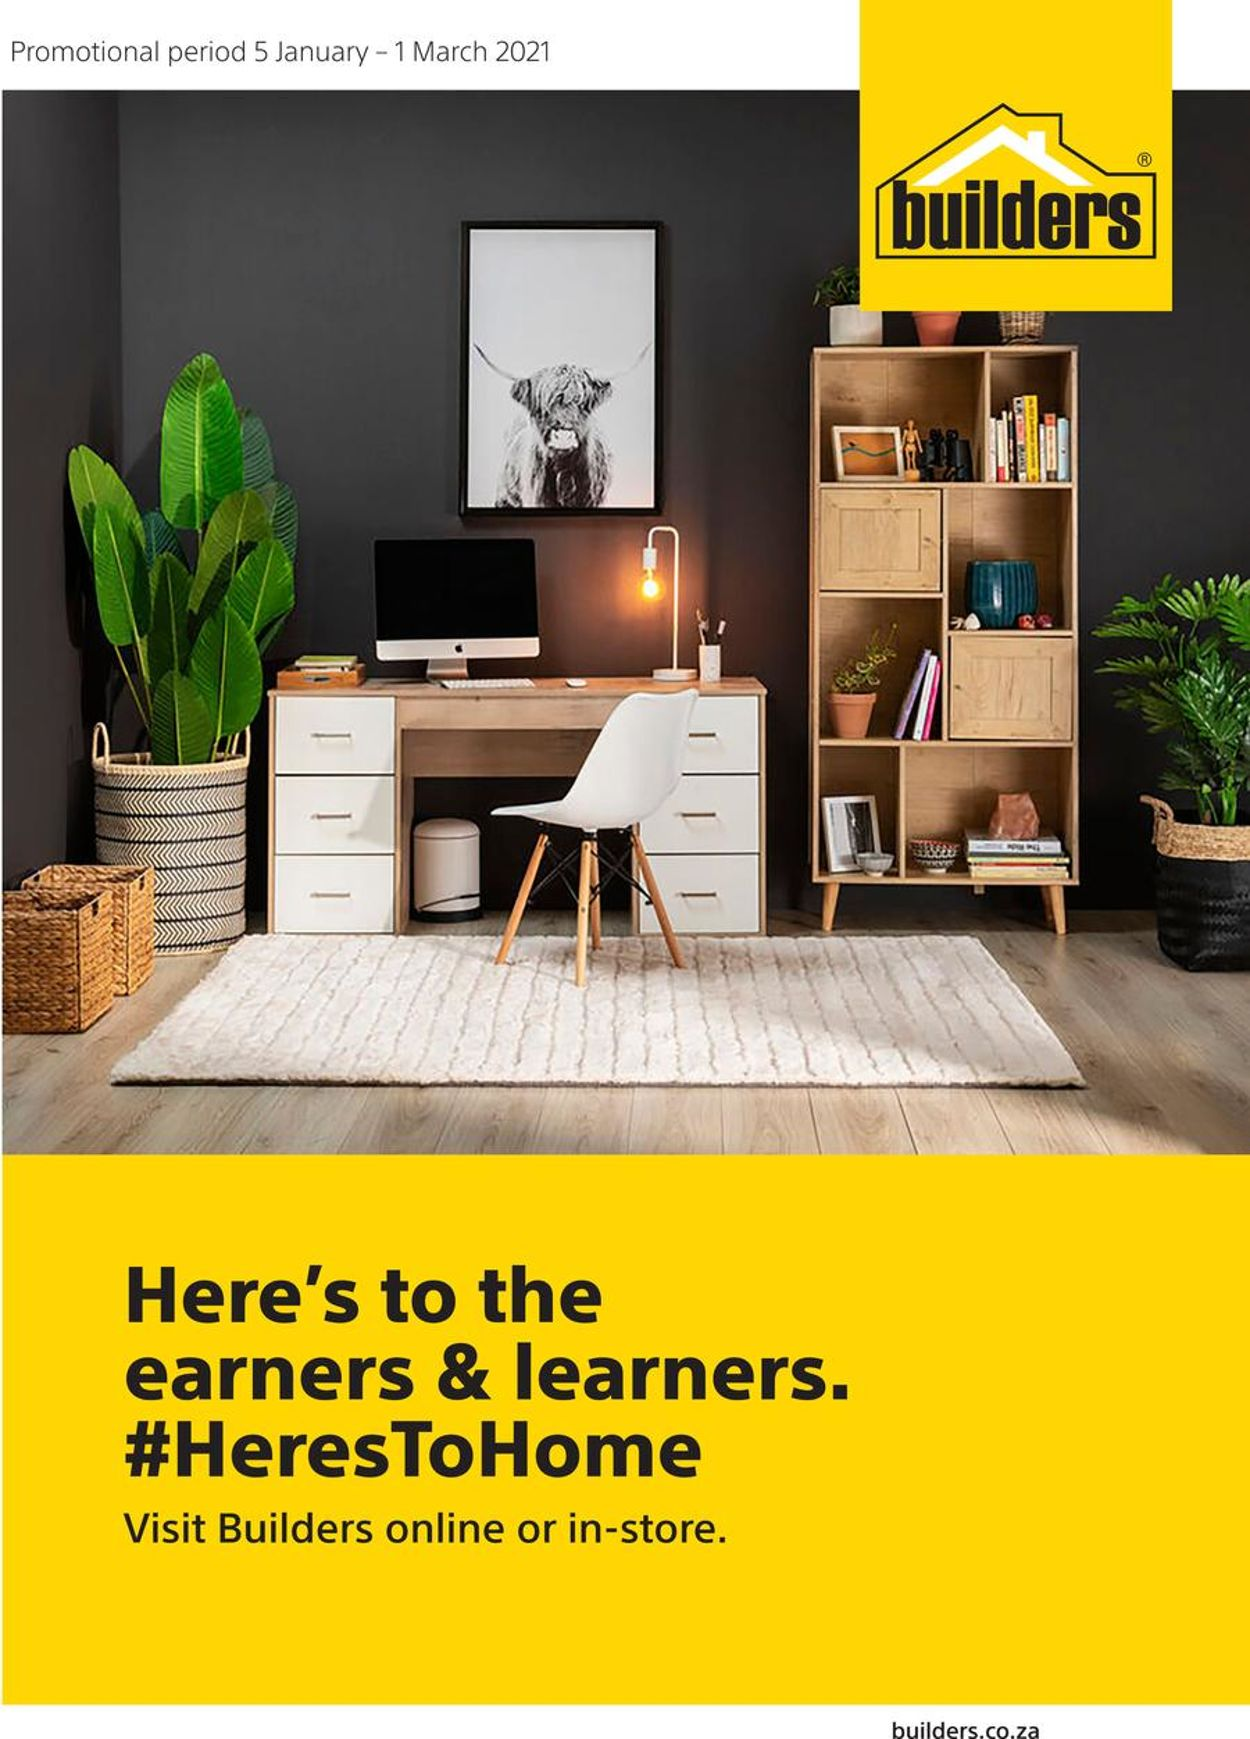 Builders Warehouse  Earners And Learners 2021 Catalogue - 2021/01/05-2021/03/01